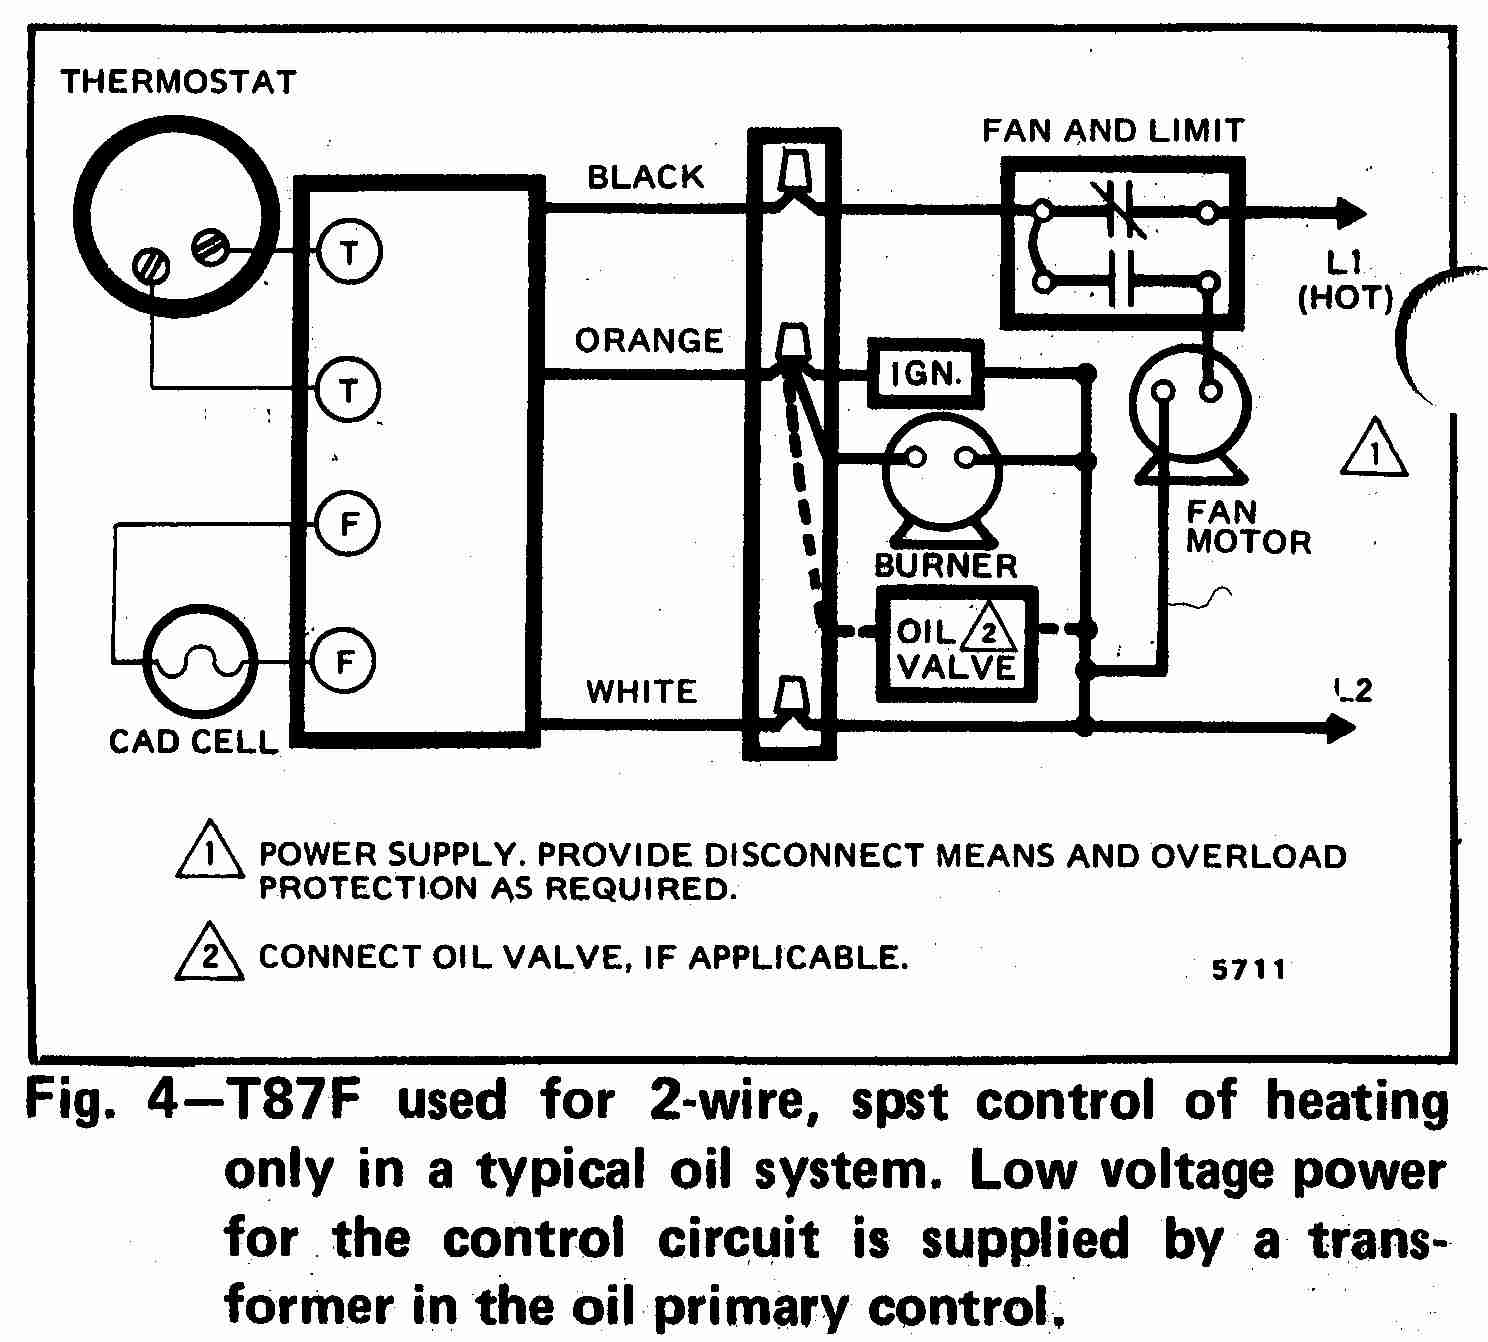 room thermostat wiring diagrams for hvac systems rh inspectapedia com carrier hvac thermostat wiring diagram honeywell hvac thermostat wiring diagram